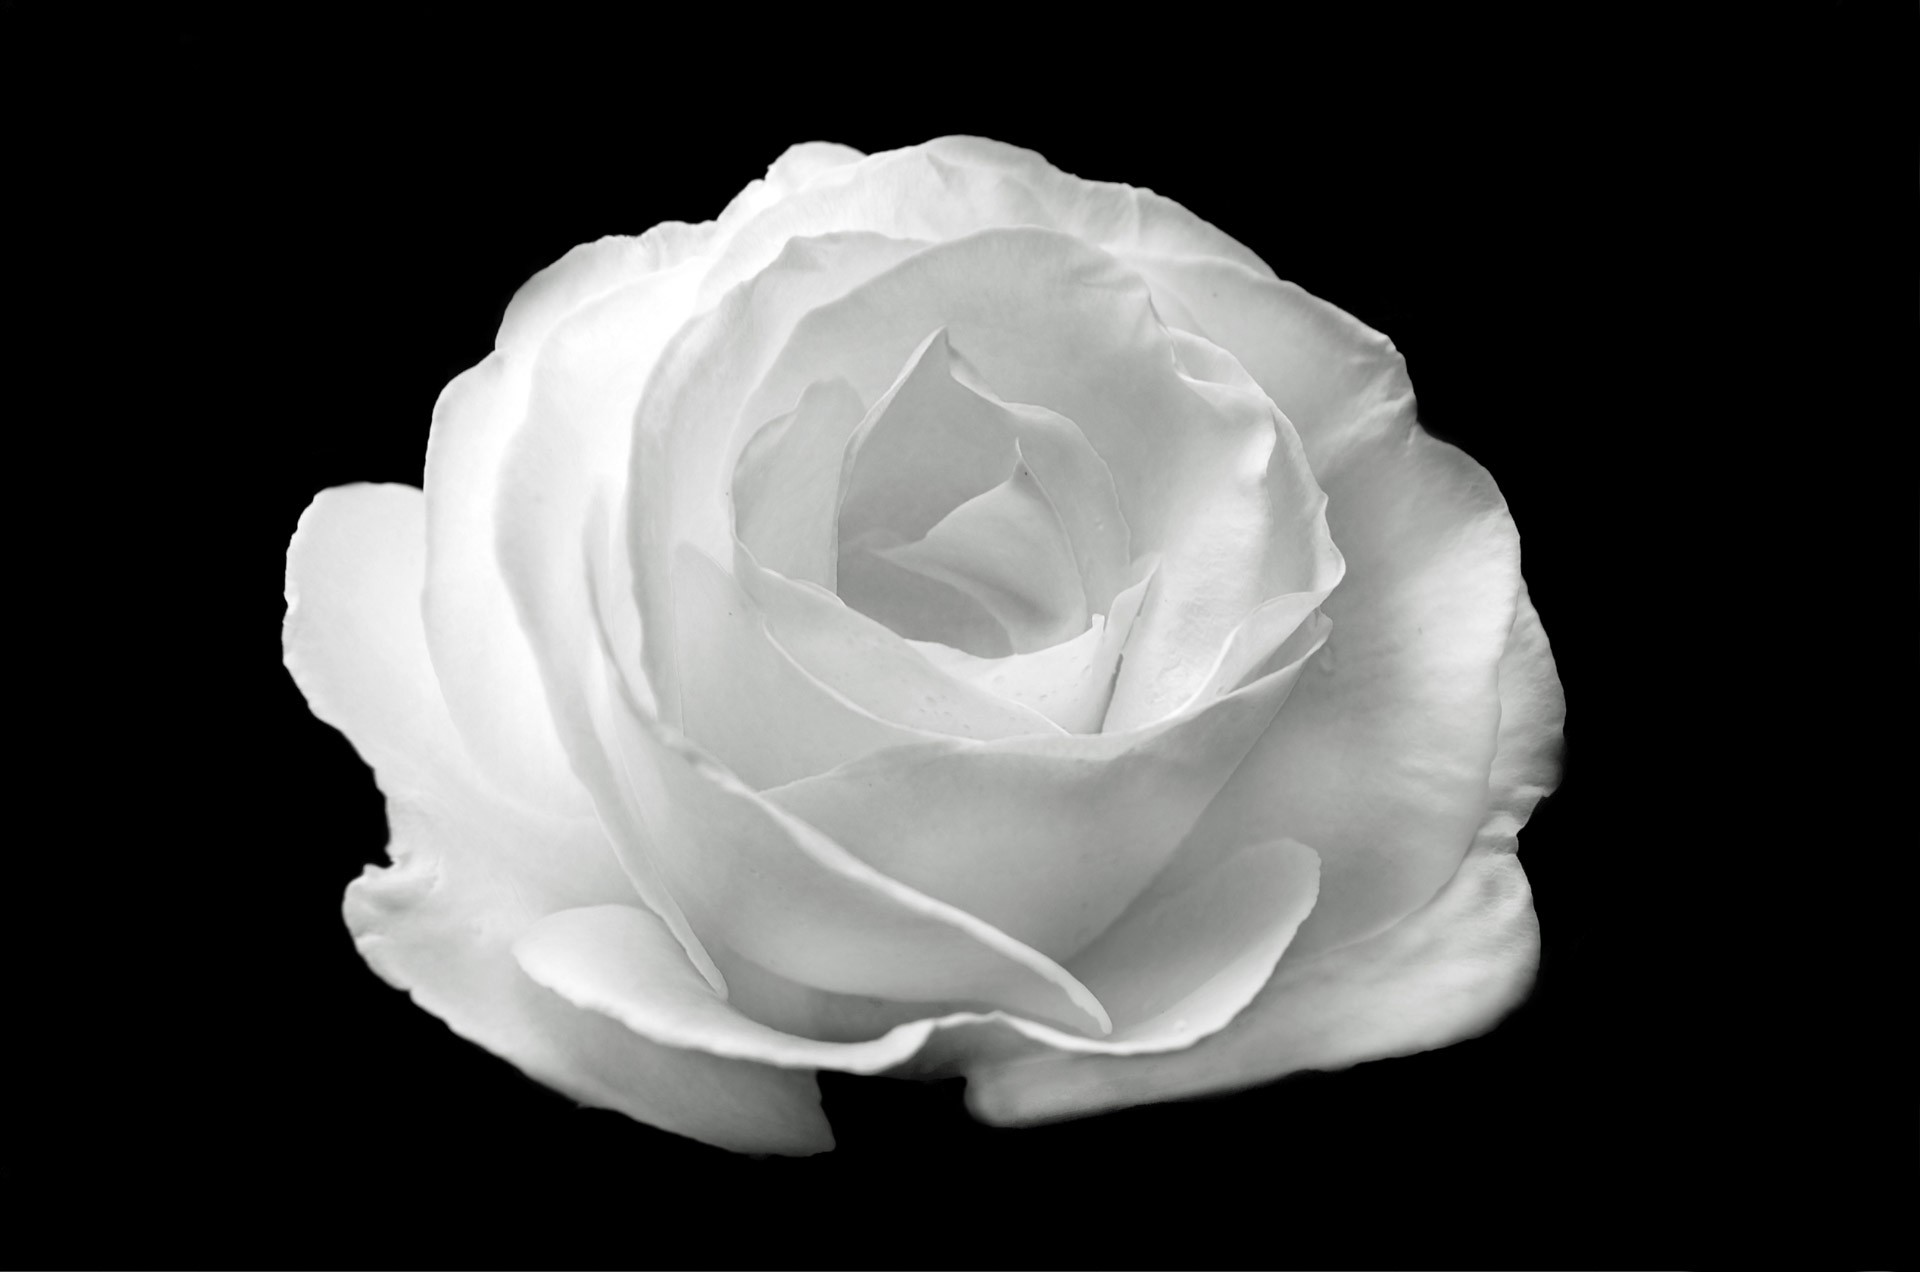 Black And White Rose Wallpaper 61 Images